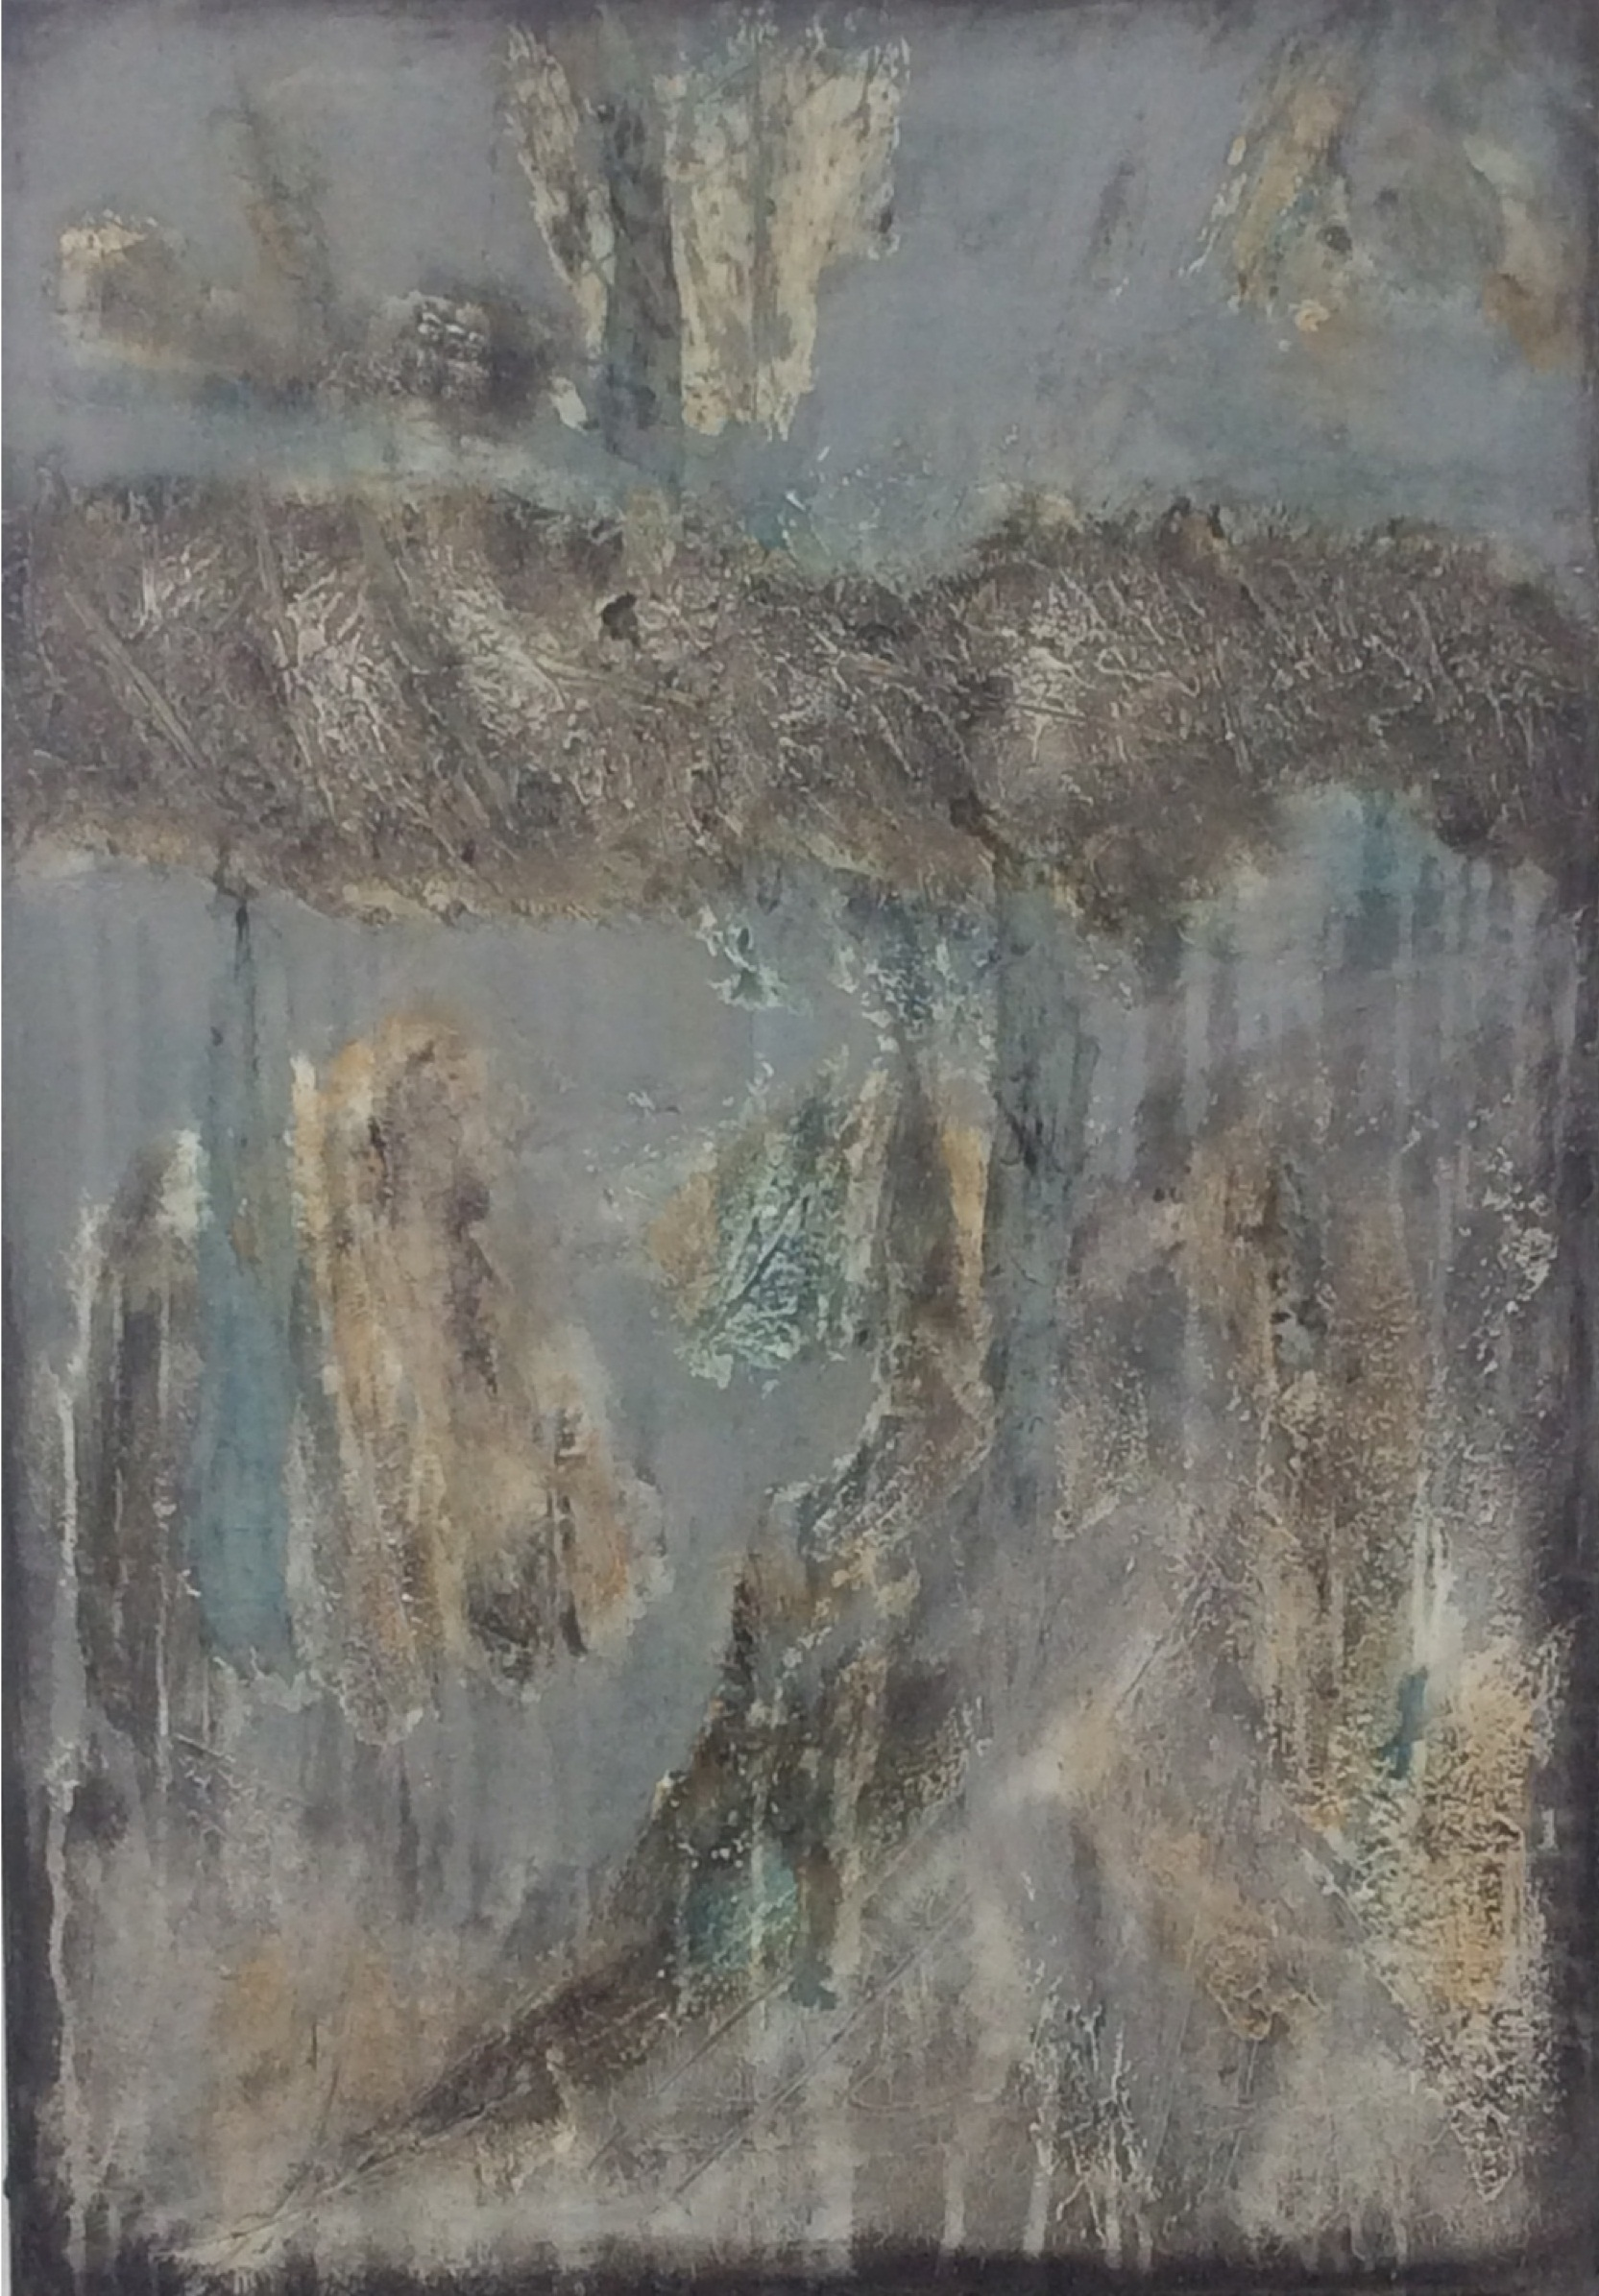 Abstract textured painting in grey and an unusual kind of green